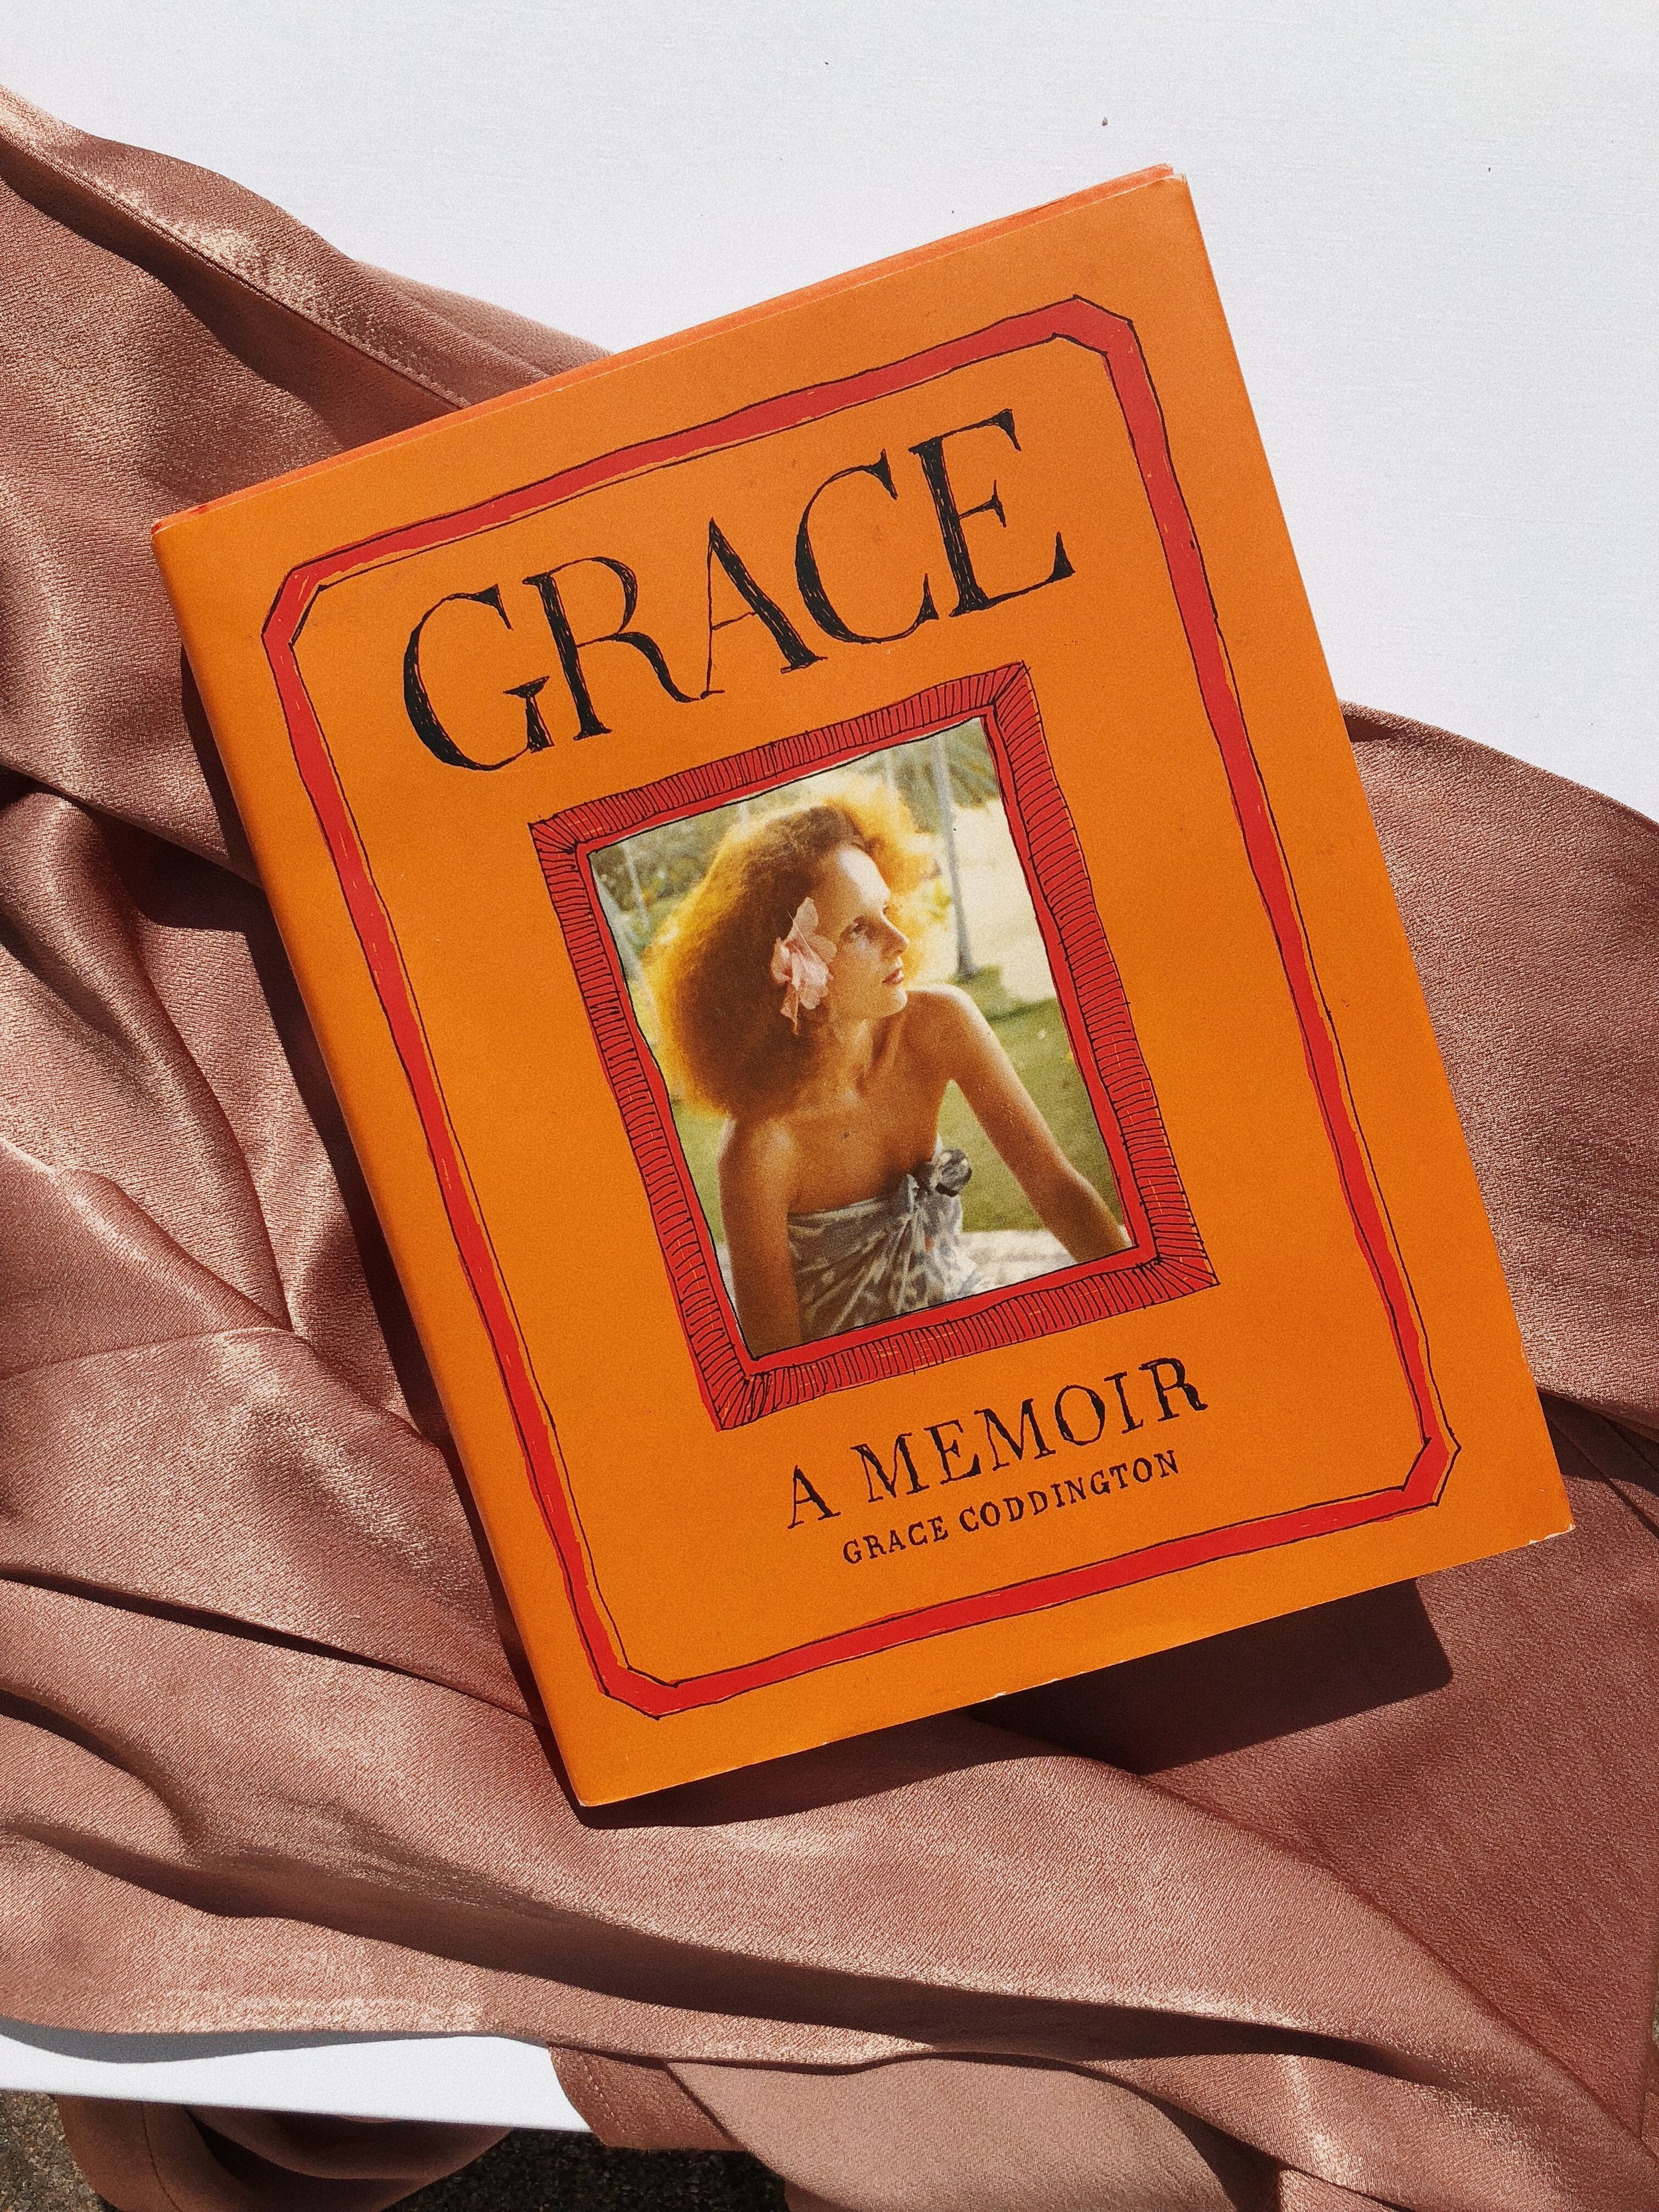 I THNK LIKE EVERYONE, I LOVED GRACE IN THE SEPTEMBER ISSUE DOCUMENTARY. THIS   BOOK   IS HER STORY AND IT'S BEAUTIFULLY WRITTEN, SMART AND FUNNY - THE POP OF ORANGE LOOKS SO GOOD ON THE COFFEE TABLE AS WELL. IT MAKES SUCH A GREAT GIFT FOR FASHION LOVERS, TOO! -J